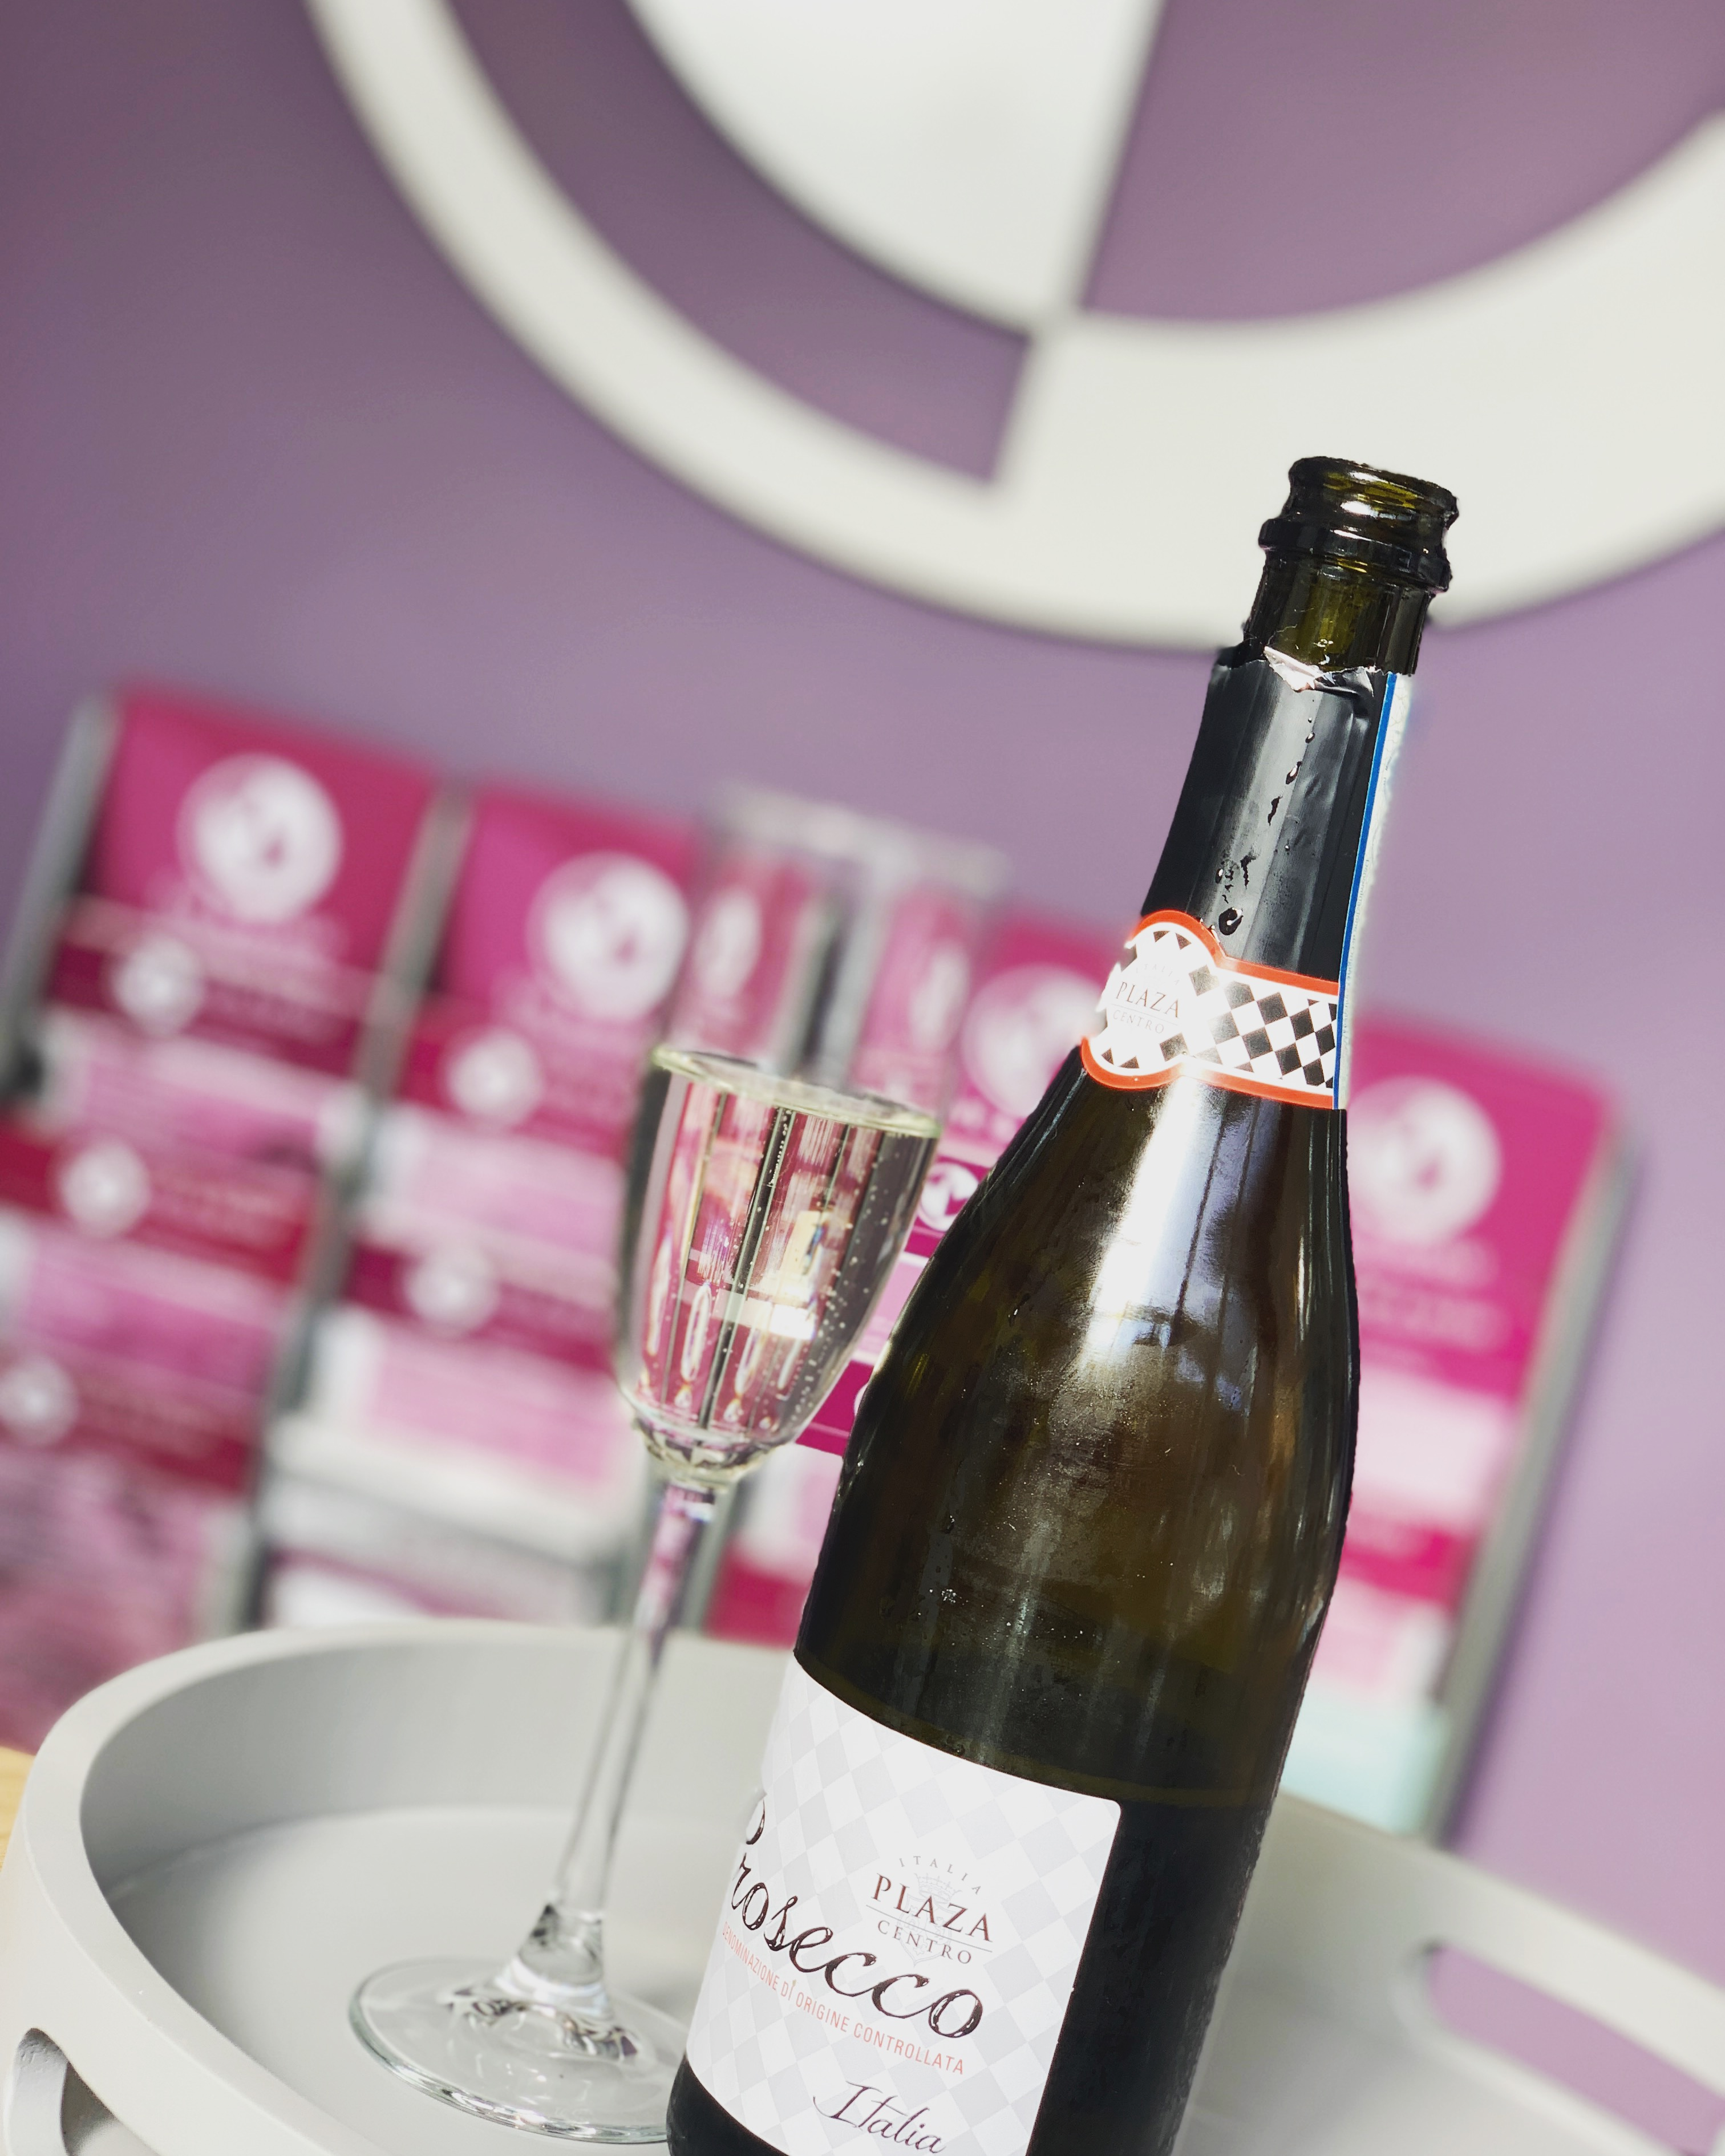 FRIYAY FIZZ - every Friday at the salon